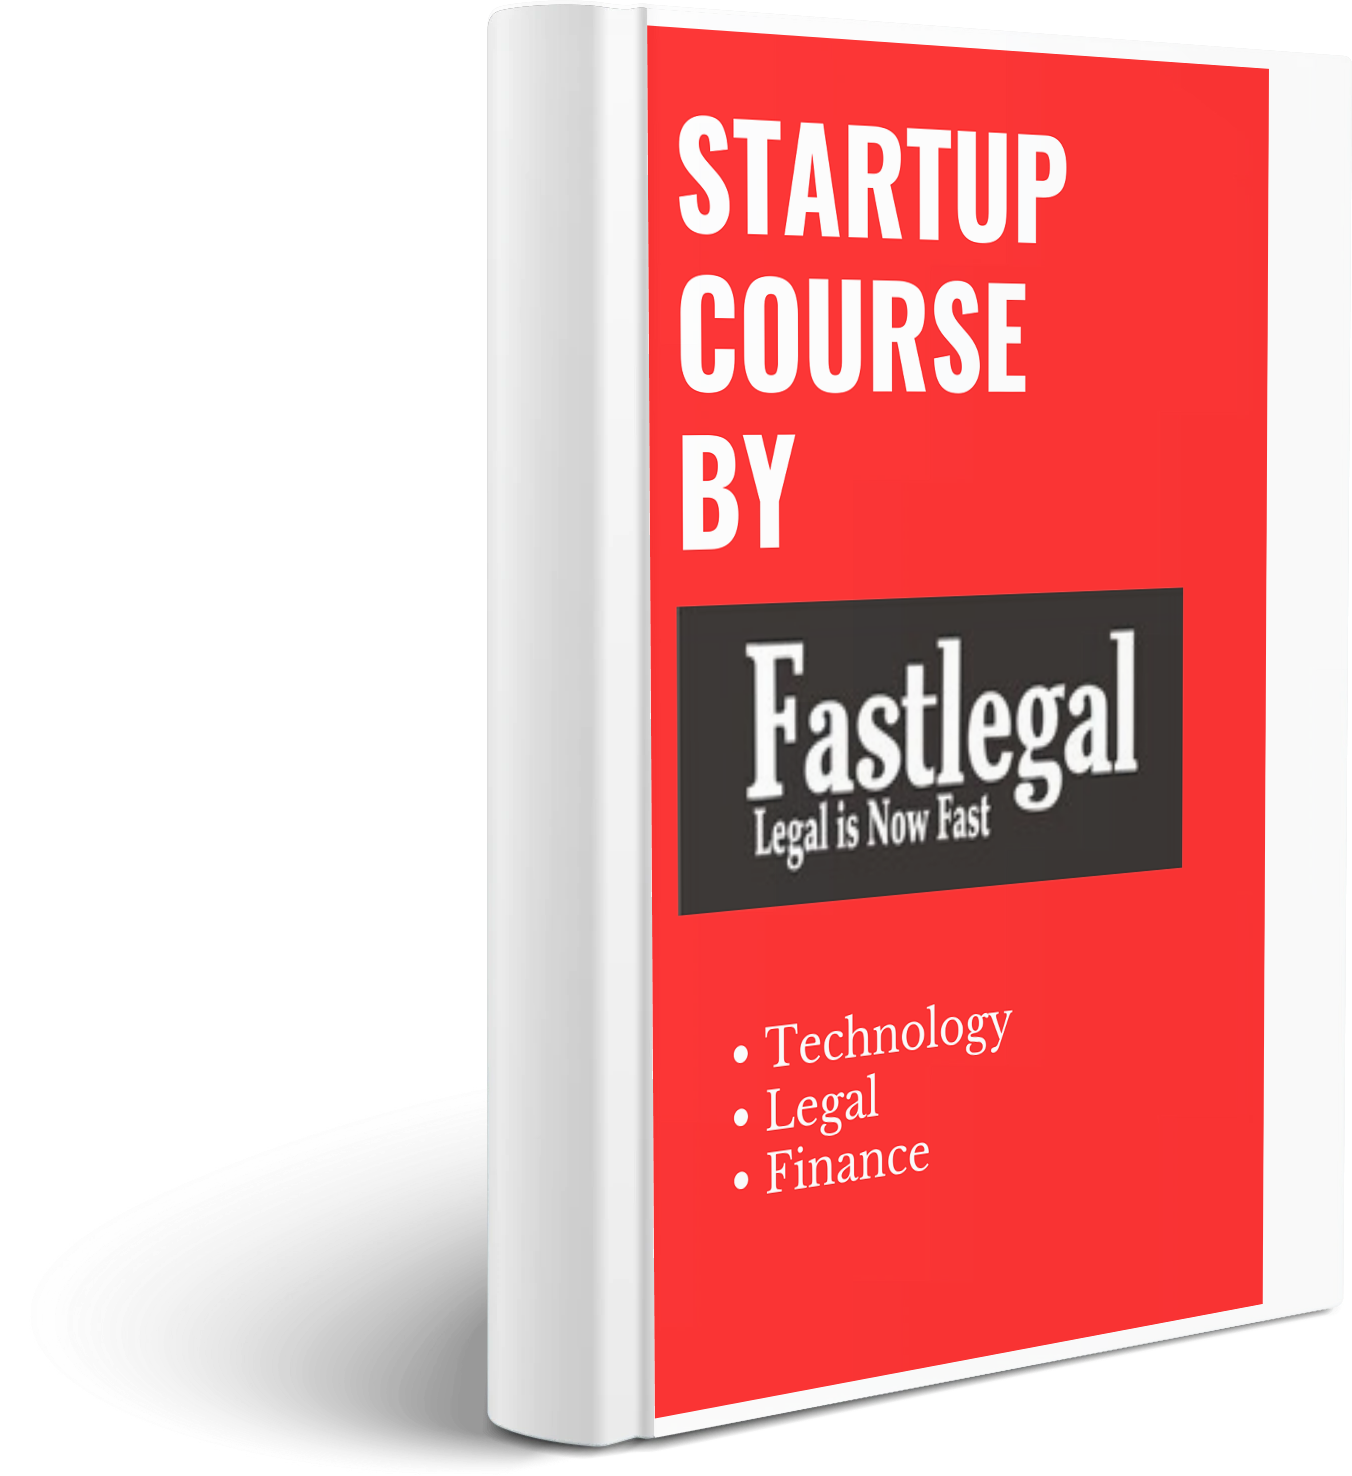 Startup course by Fastlegal